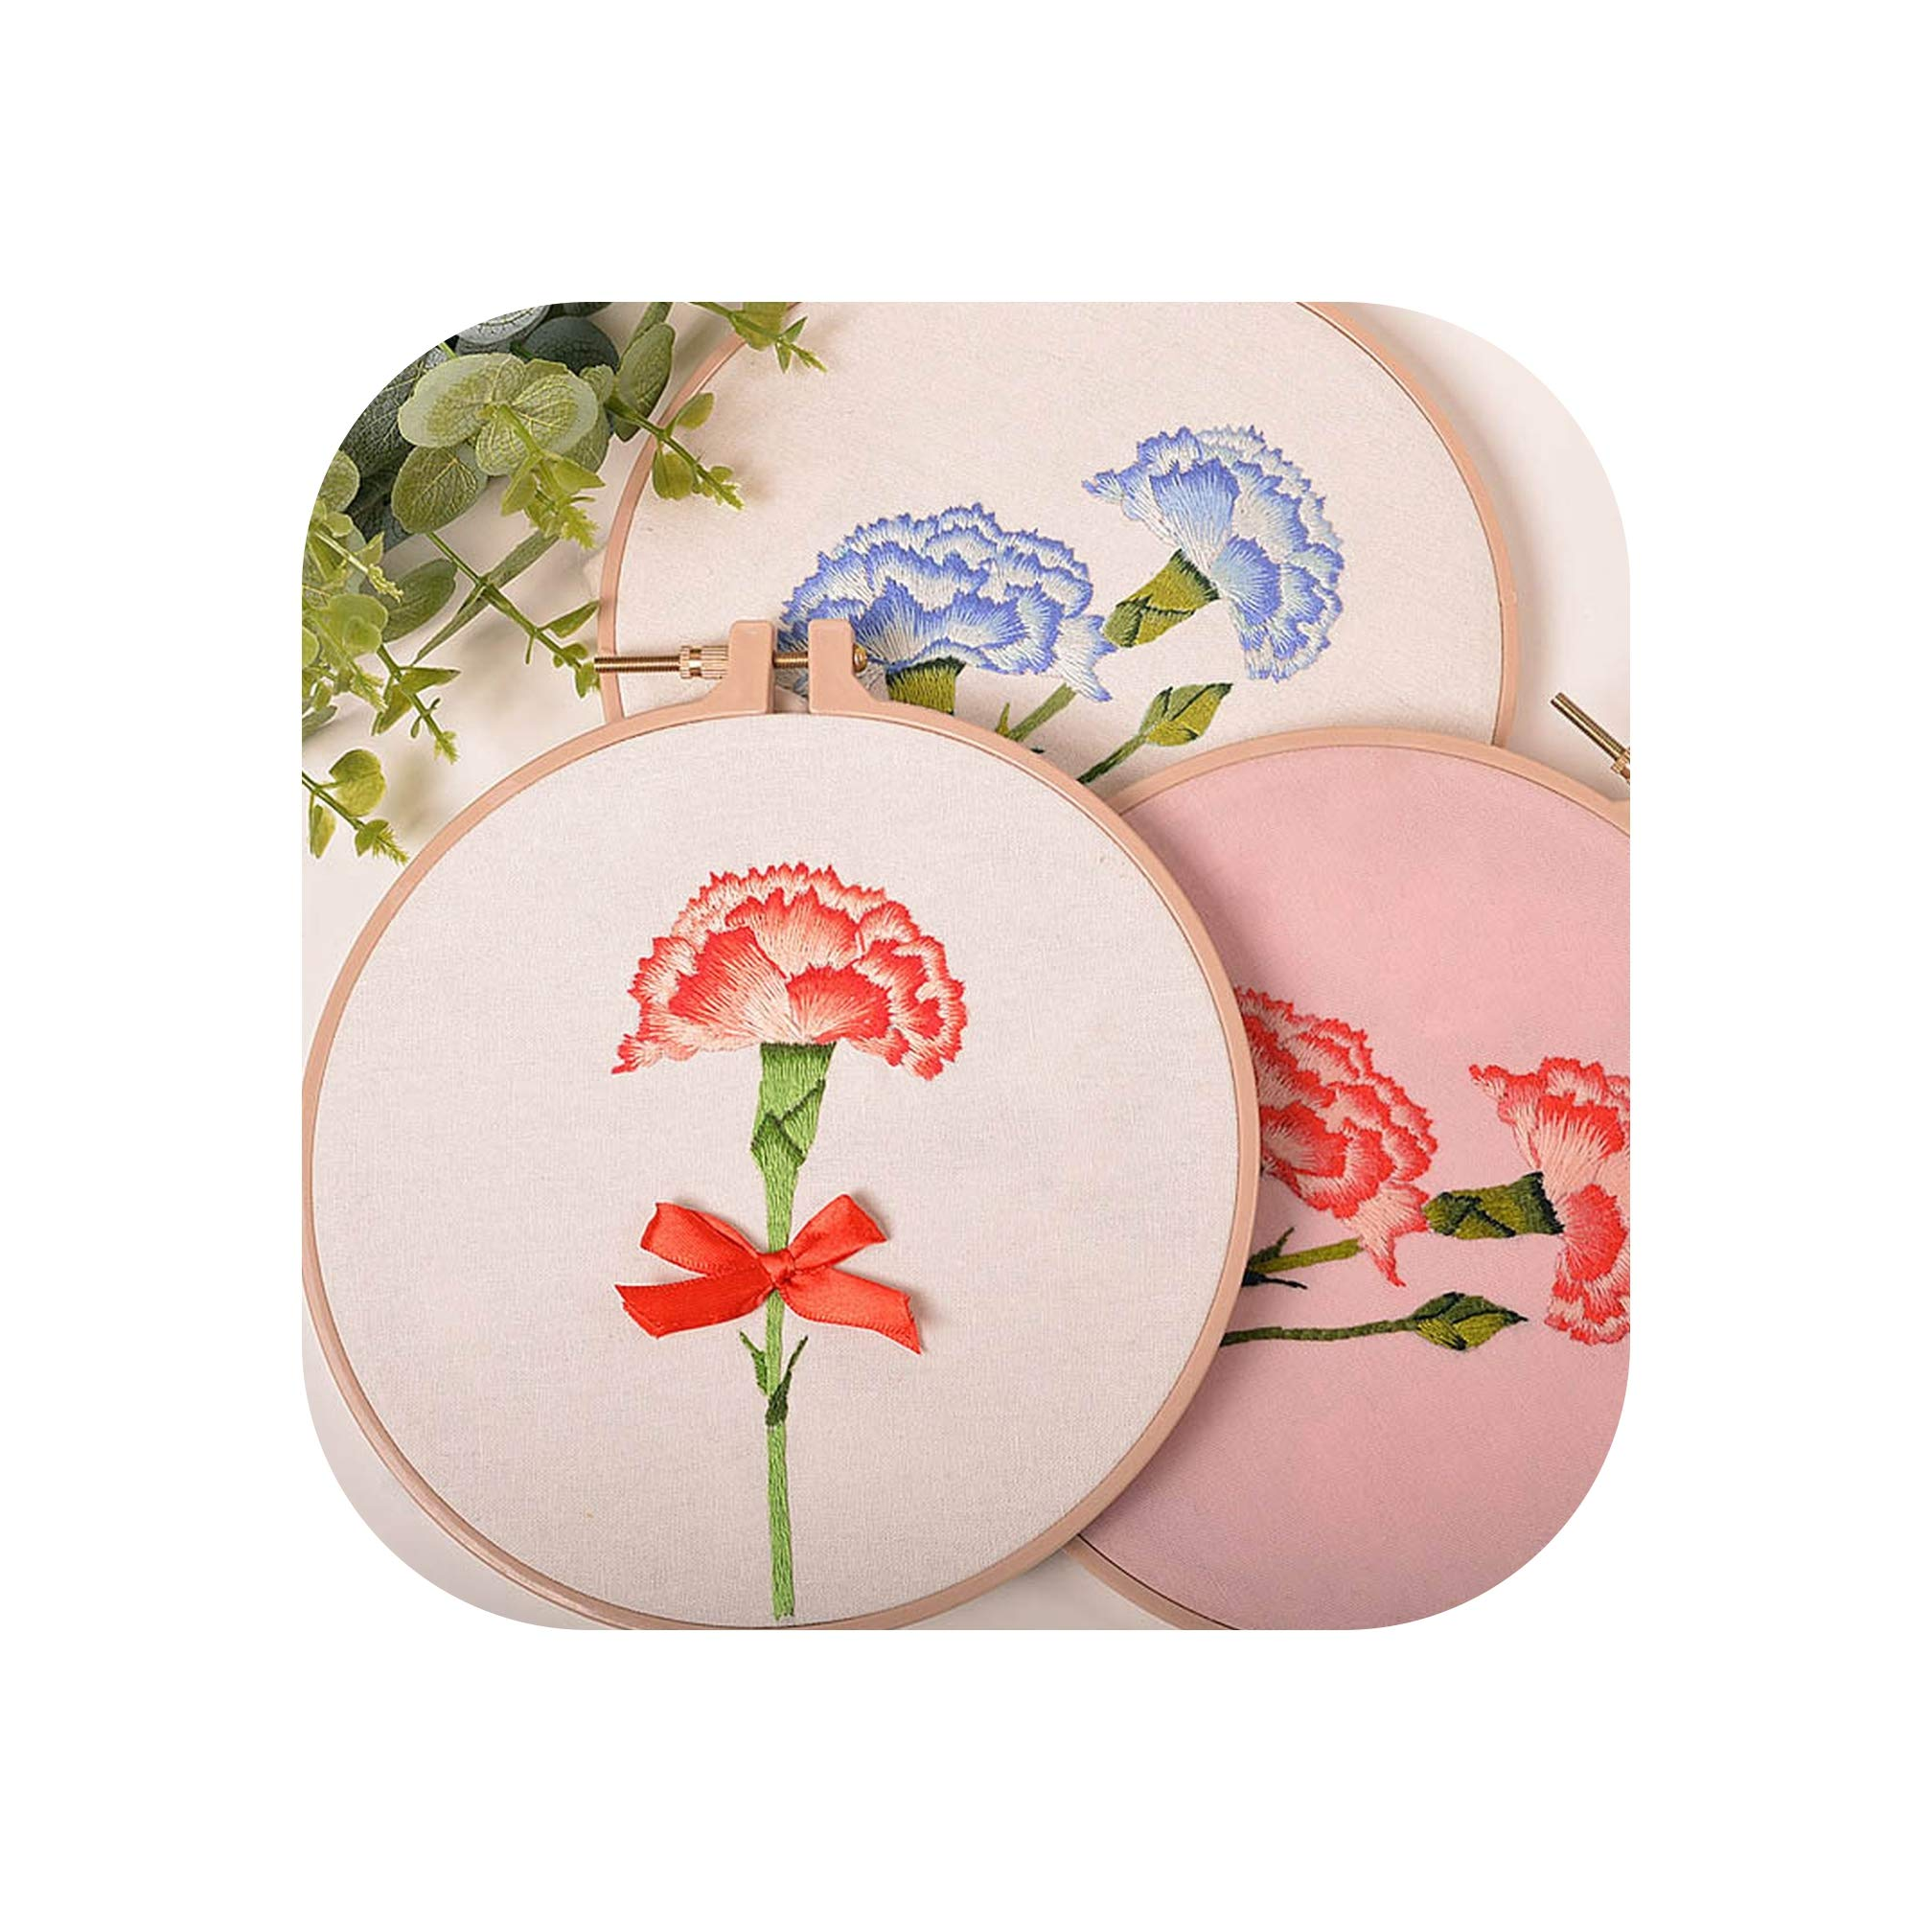 DIY Carnation Flower Embroidery Kits with Hoop Flower Printed Needlework Cross Stitch Sets Handmade Craft Sewing Art Home Decor,3 pcs,20cm Plastic Hoop by koweis